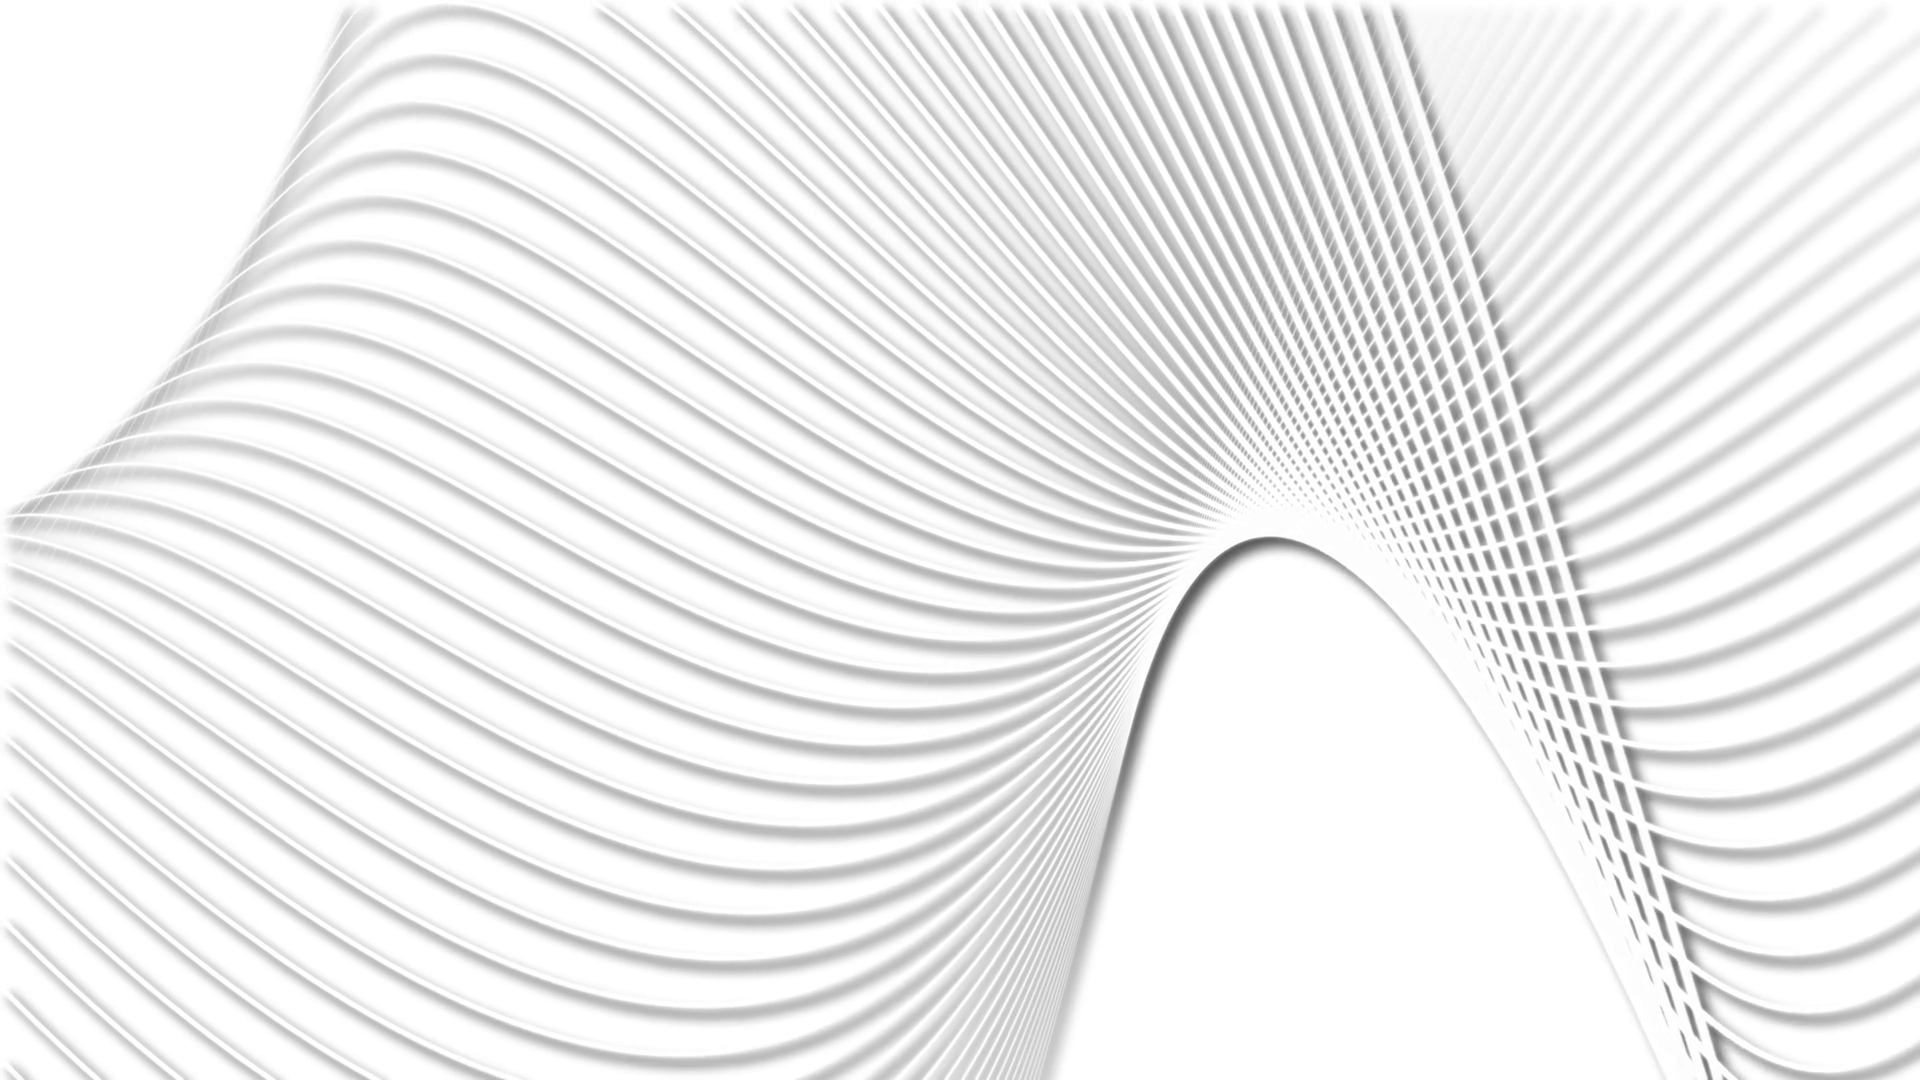 curved black lines white background Stock Video Footage - Videoblocks